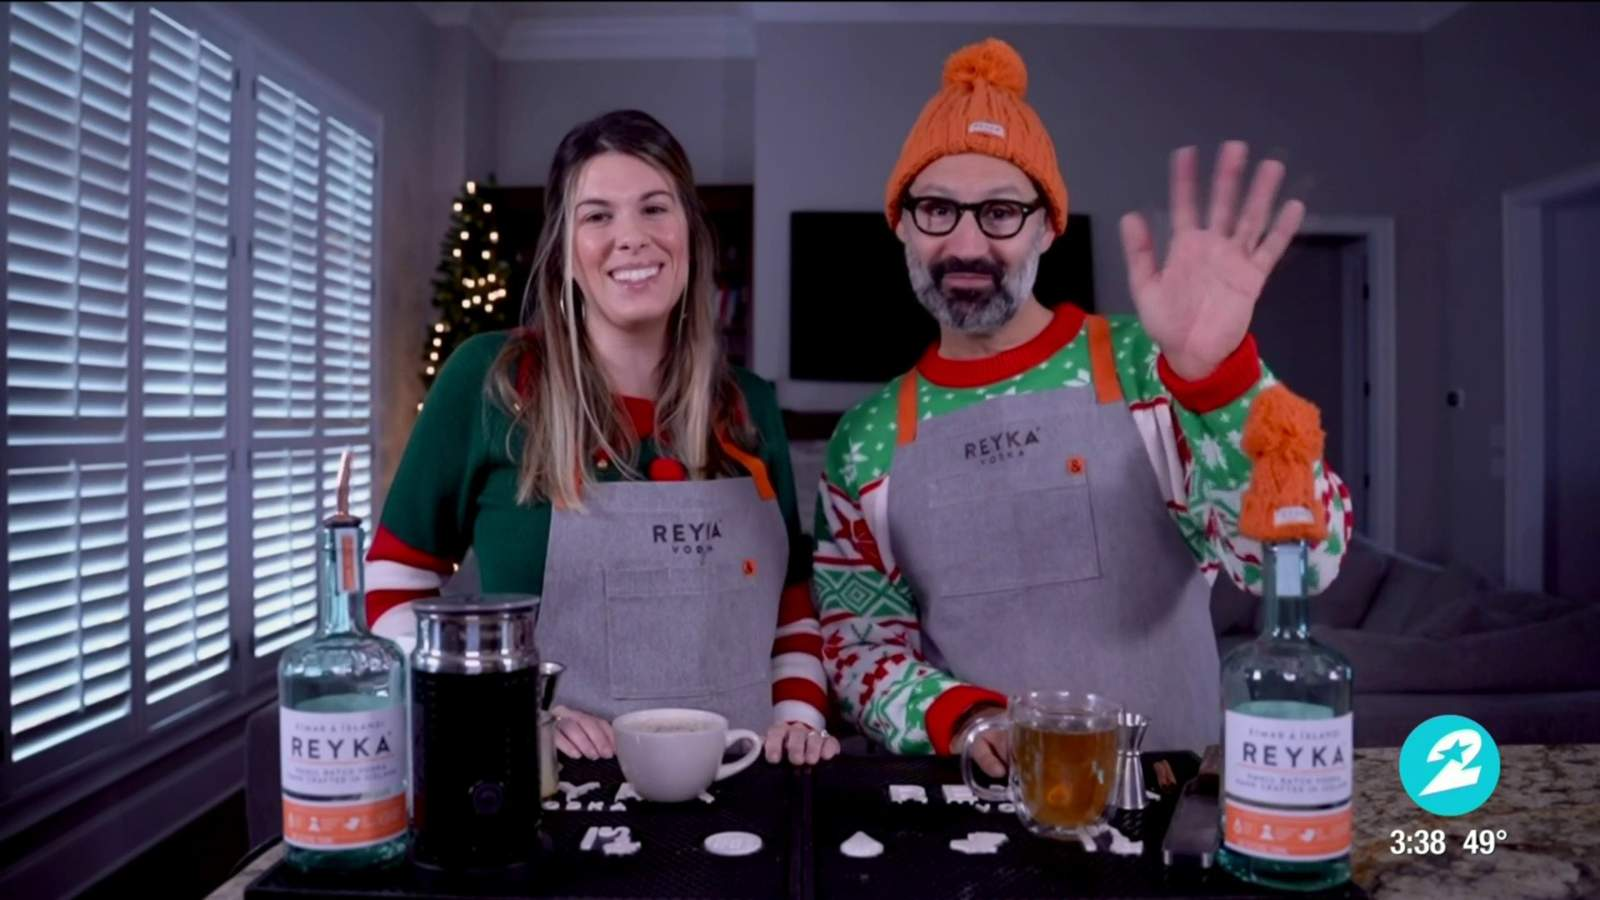 Festive Holiday Cocktails You Can Make To Help Keep Spirits Bright photo